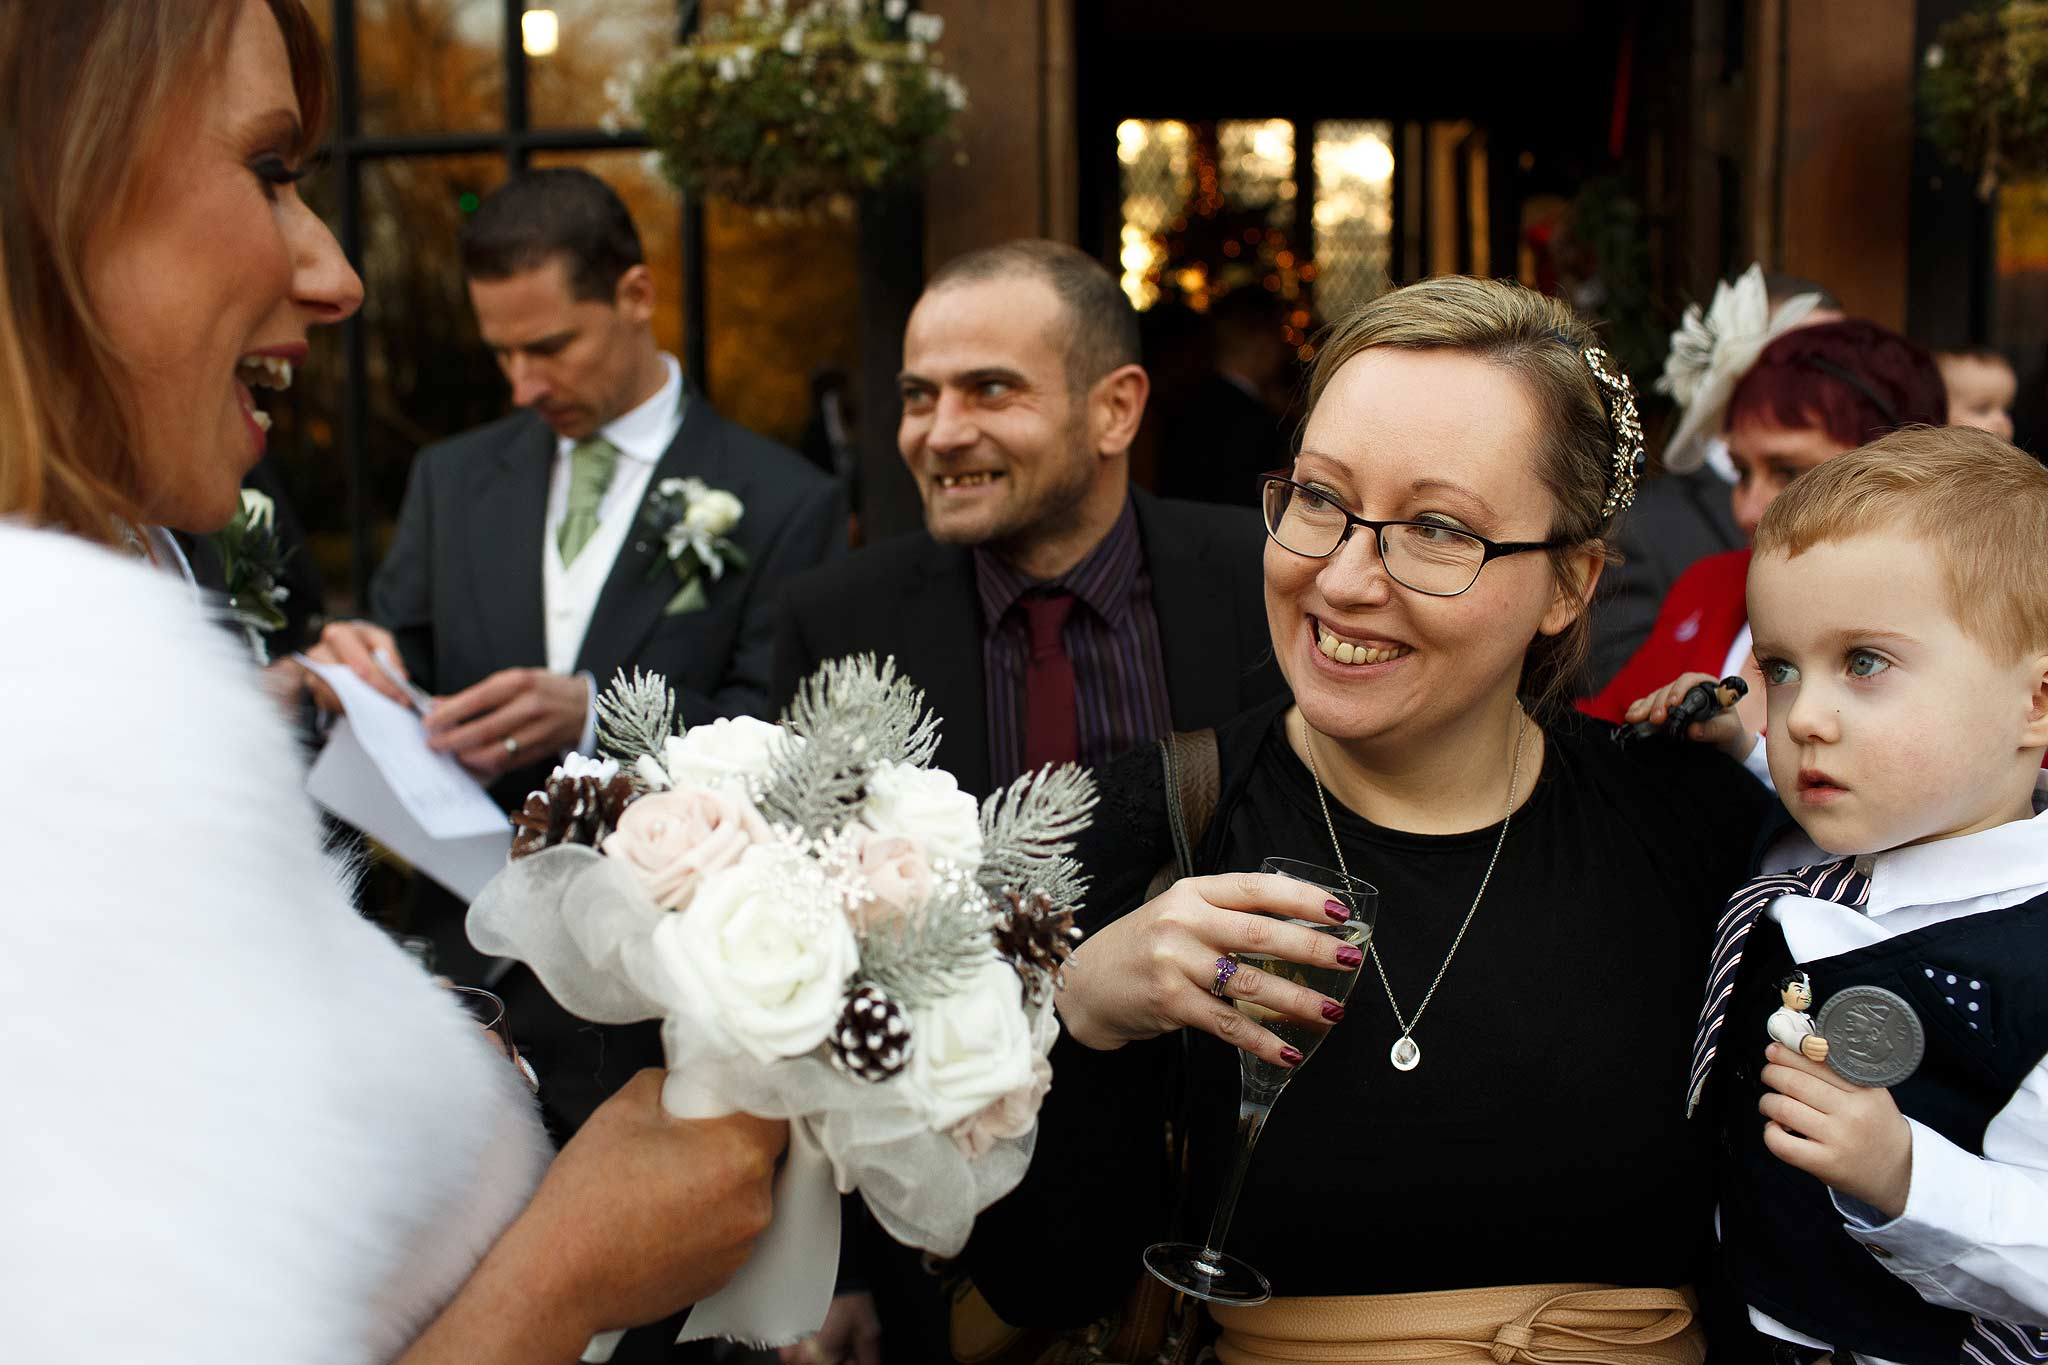 Guests greeting the bride to congratulate her at aSamlesbury Hall